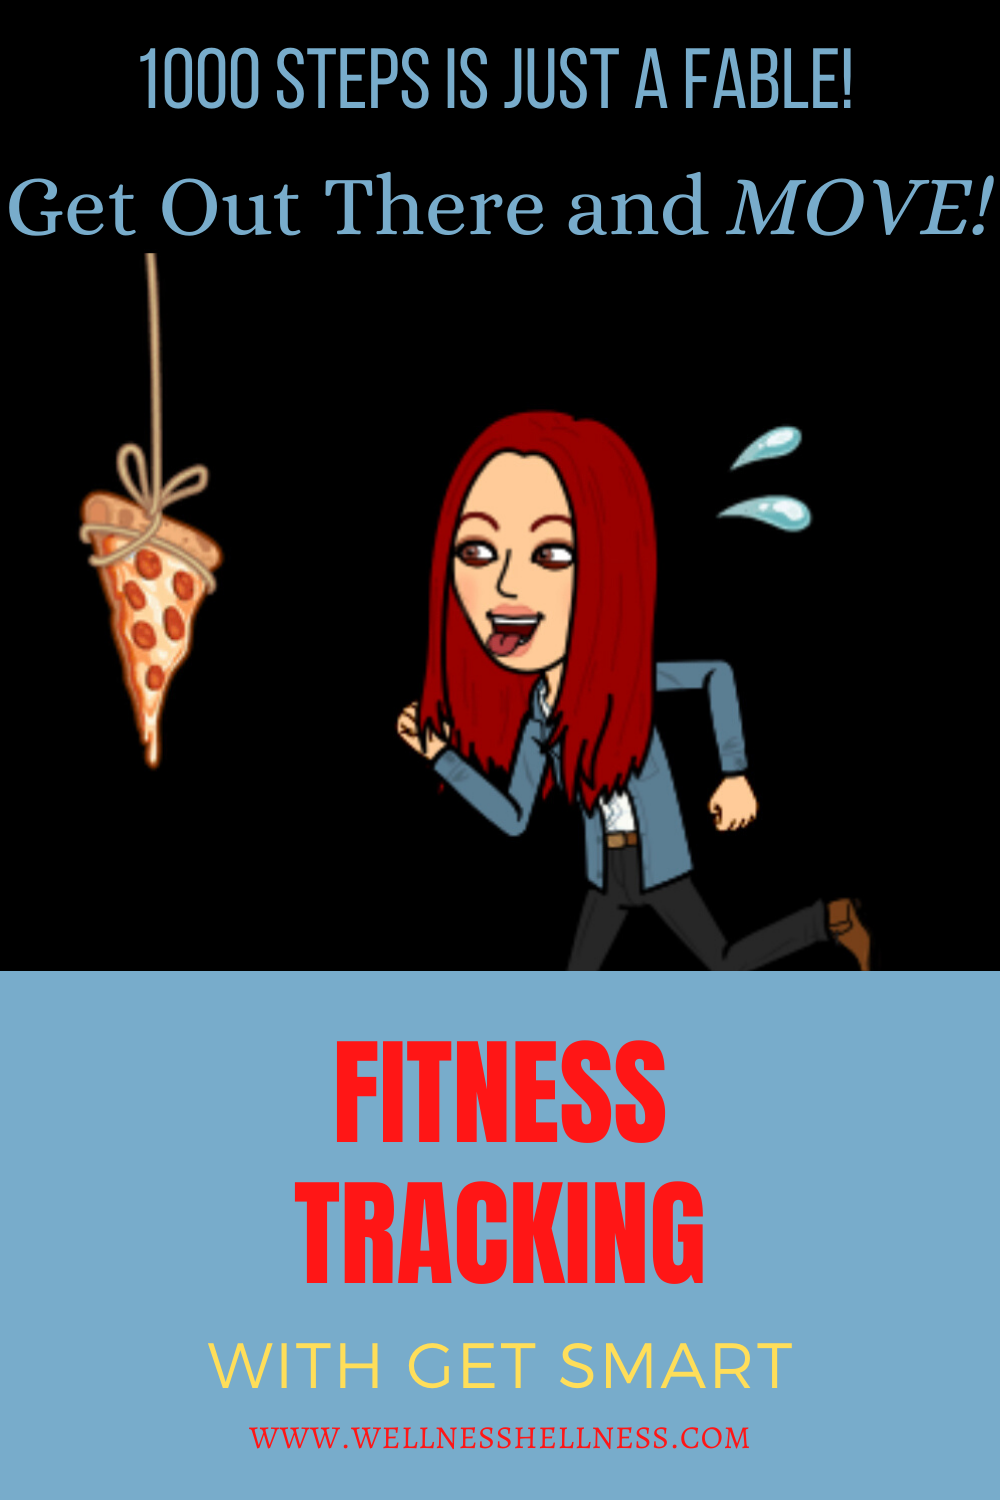 Tracking your fitness with a fitness watch. steps to fitness. Walk your yourself to great health. #applewatch #getfit #1000steps